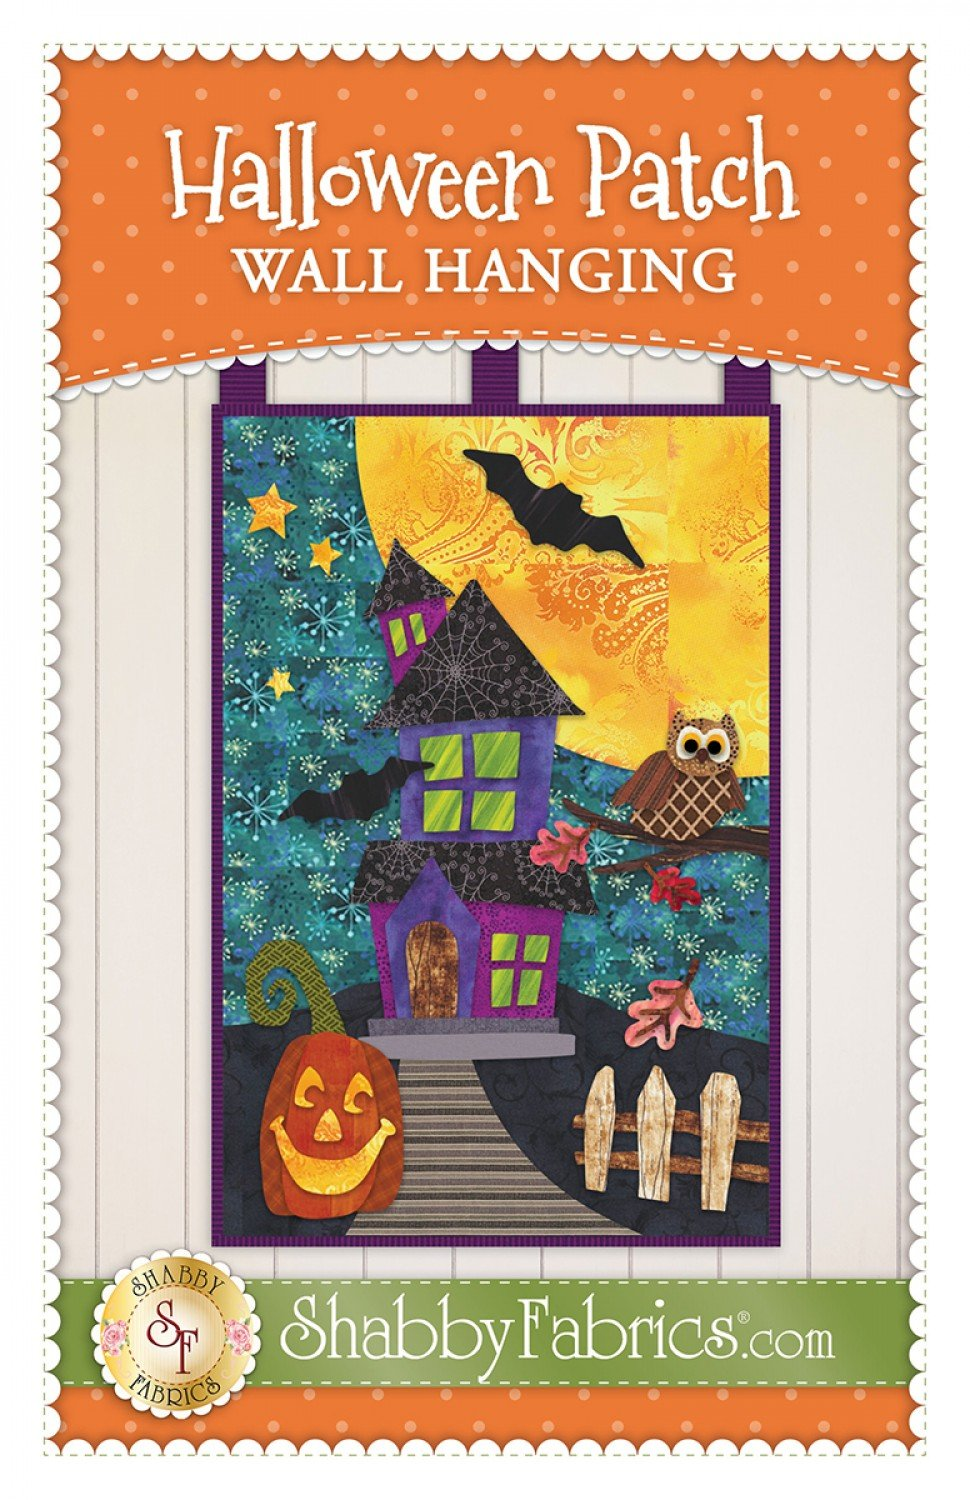 Halloween Patch Wall Hanging Quilt Pattern from Shabby Fabrics